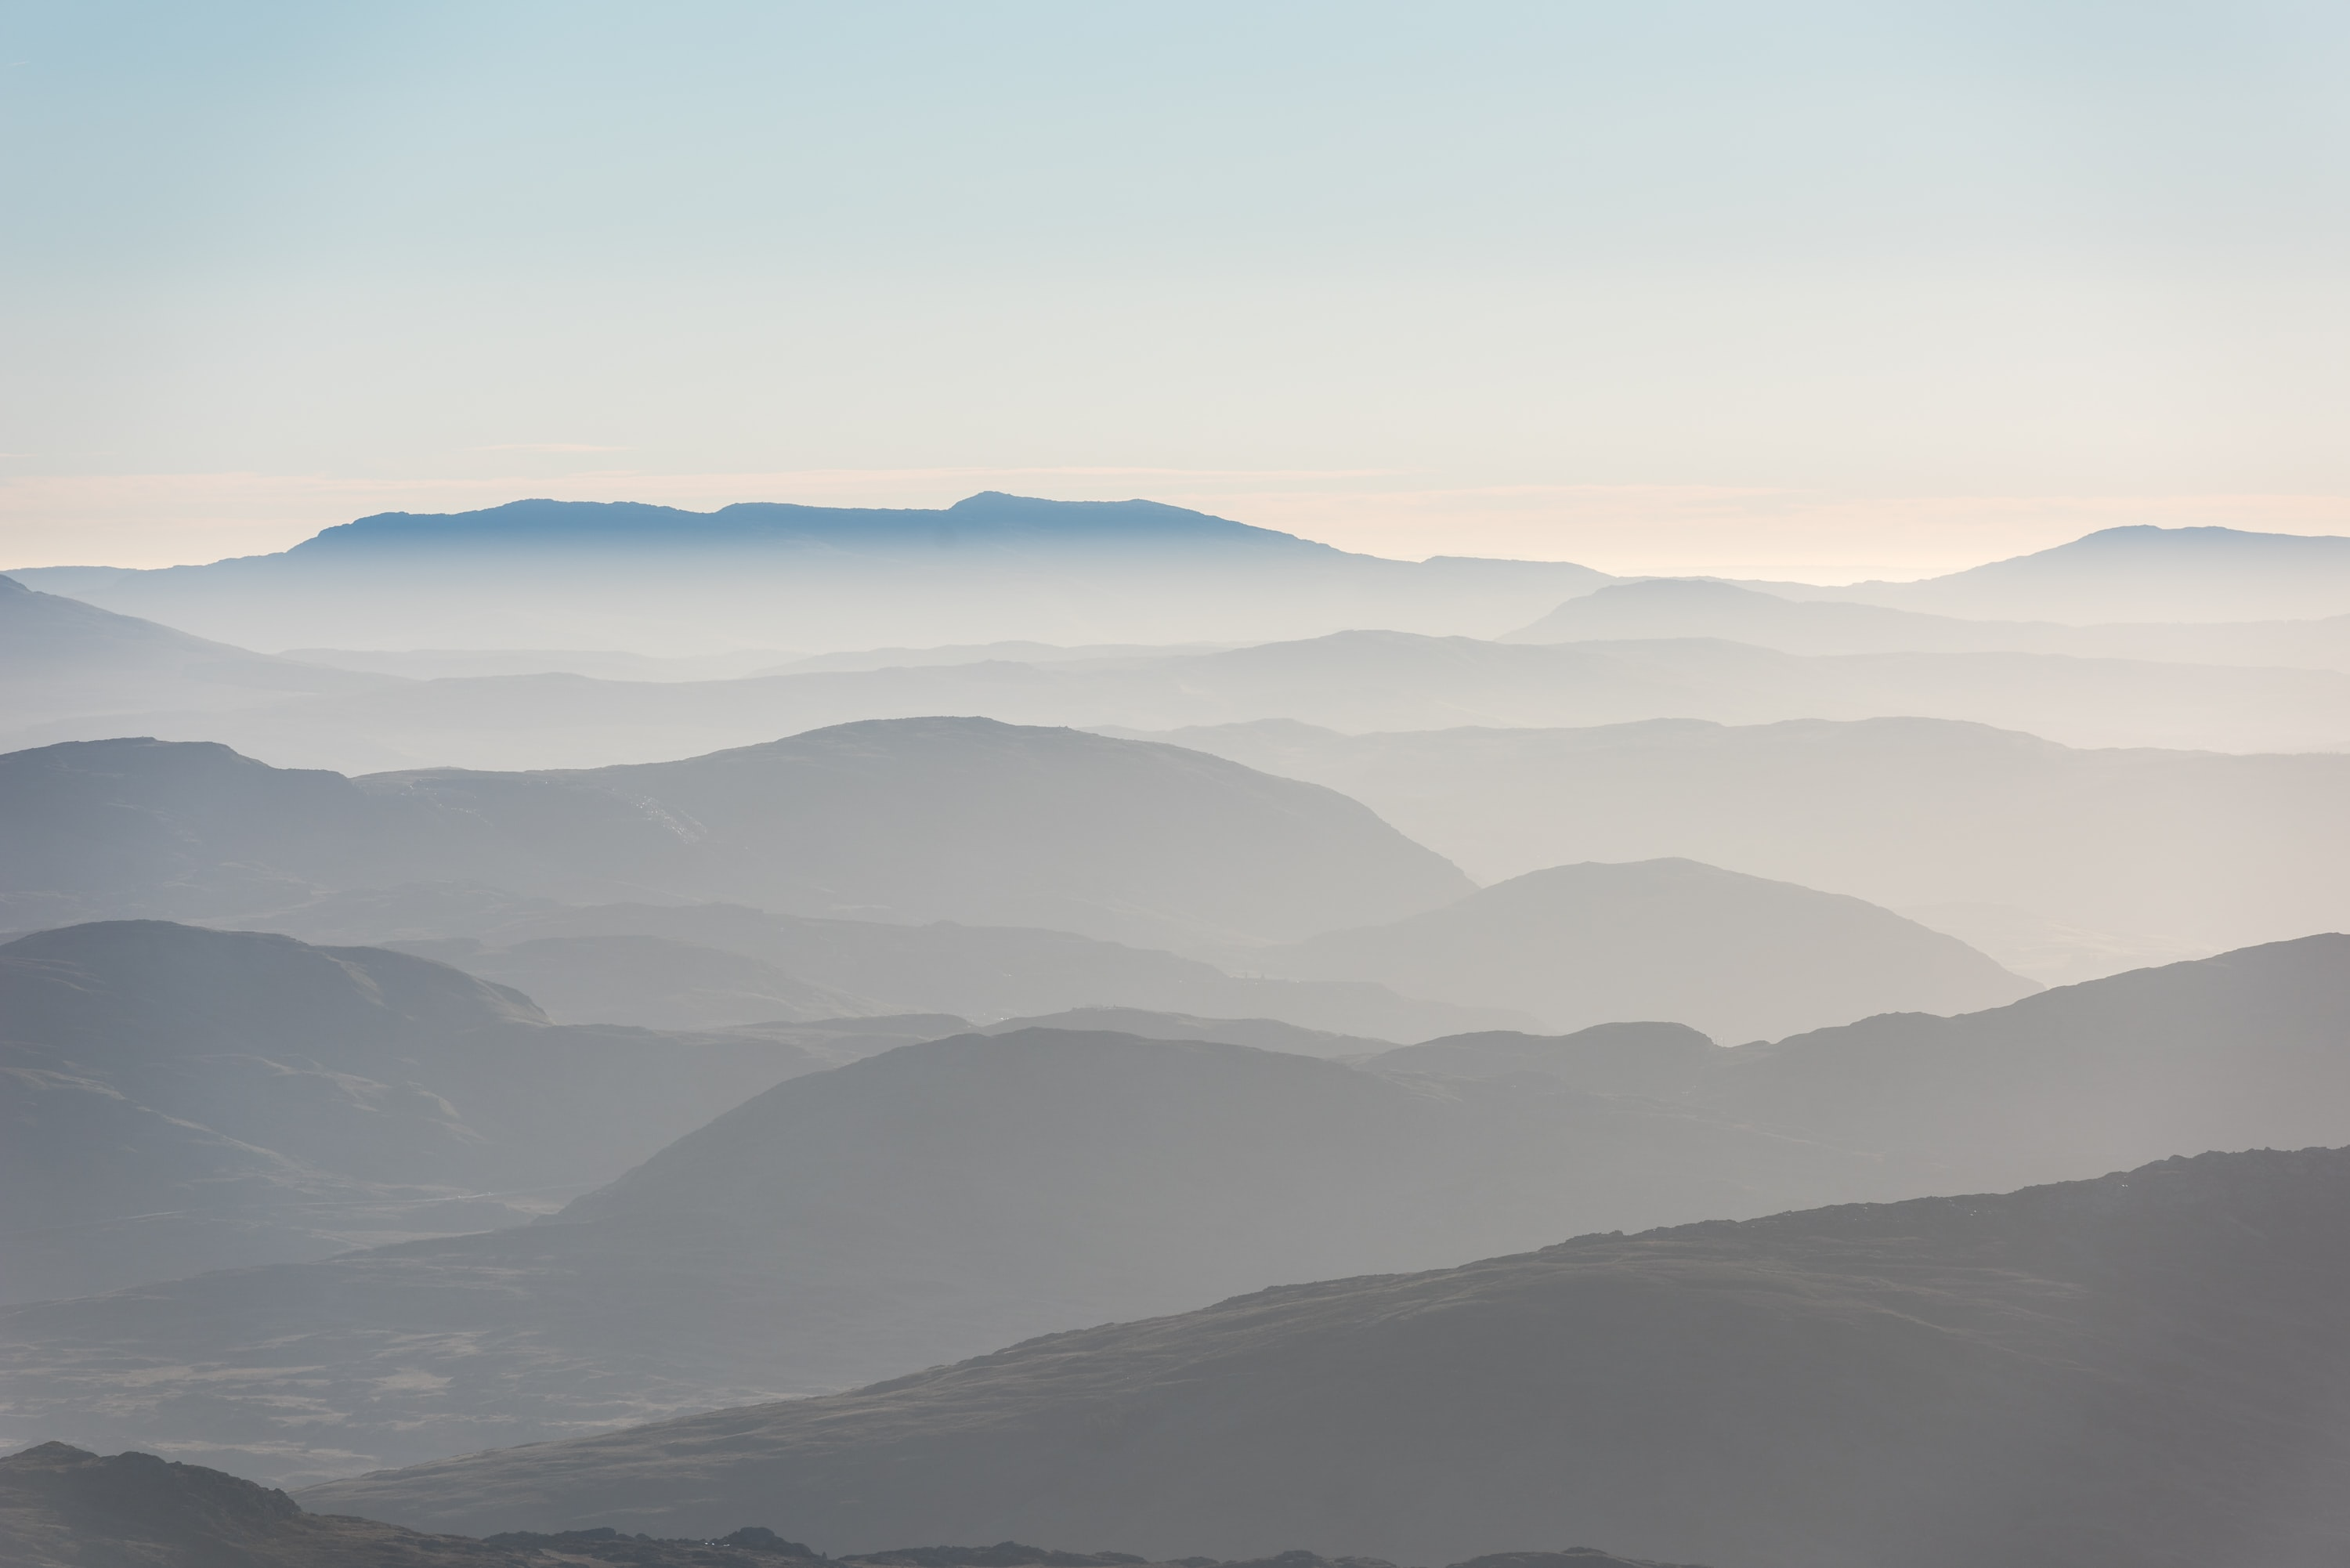 Rolling fog over hilly mountains during sunrise at Snowdonia National Park